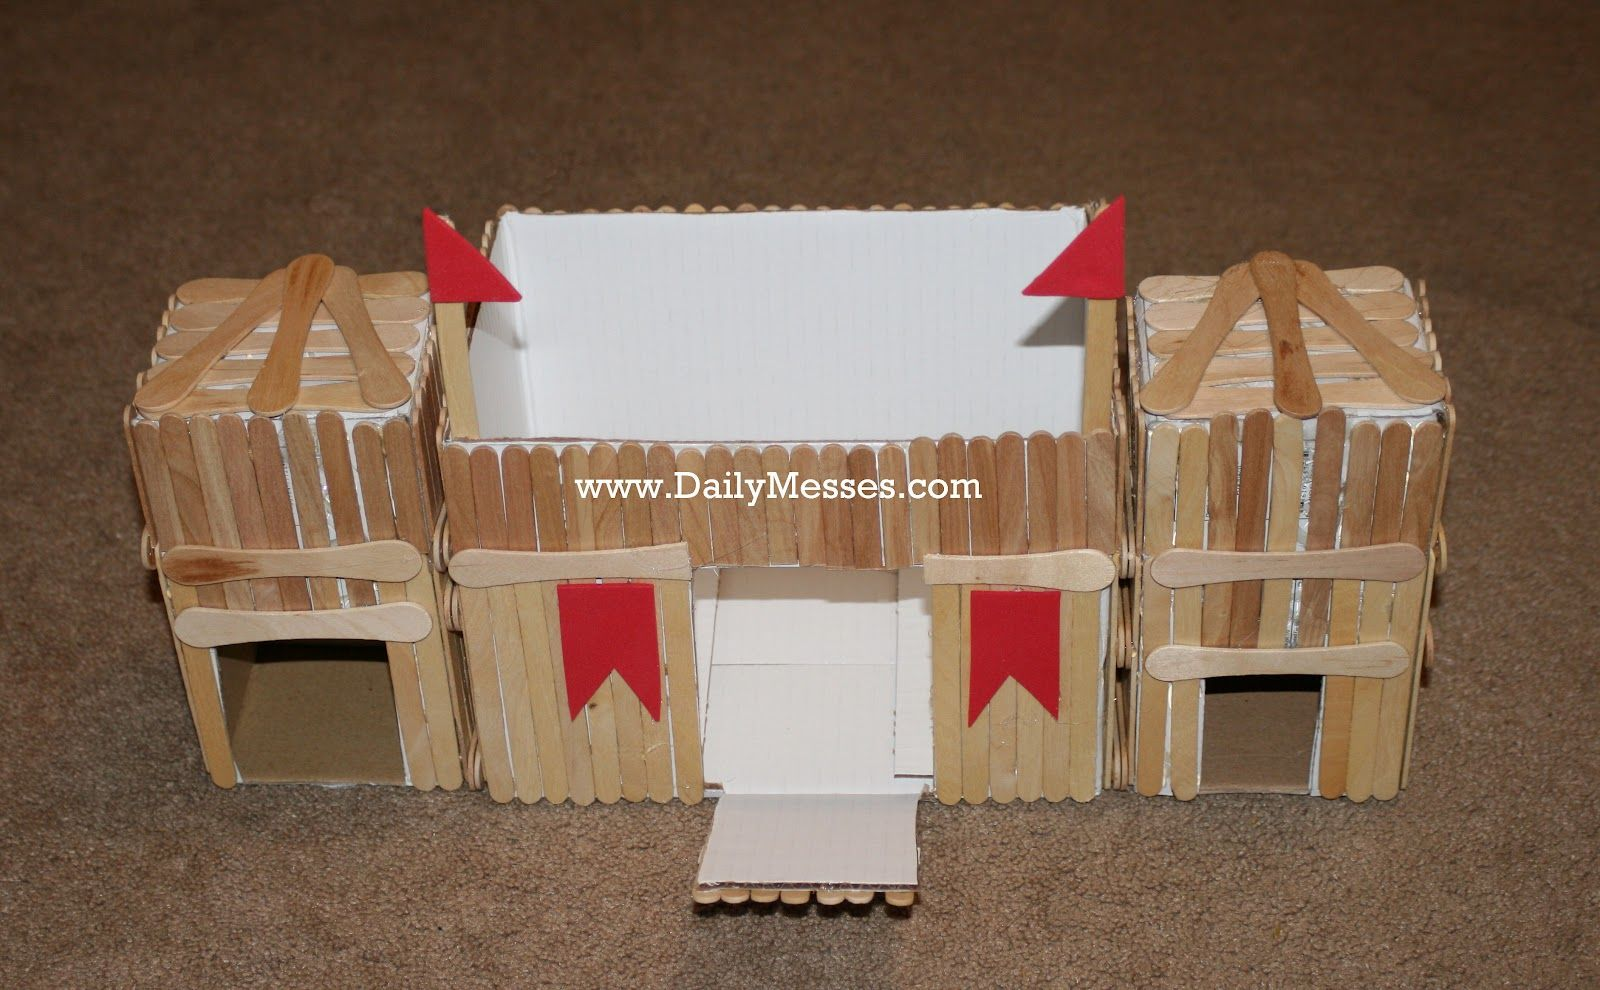 Daily messes fun with popsicle sticks homemade fort and for Homemade forts outdoors